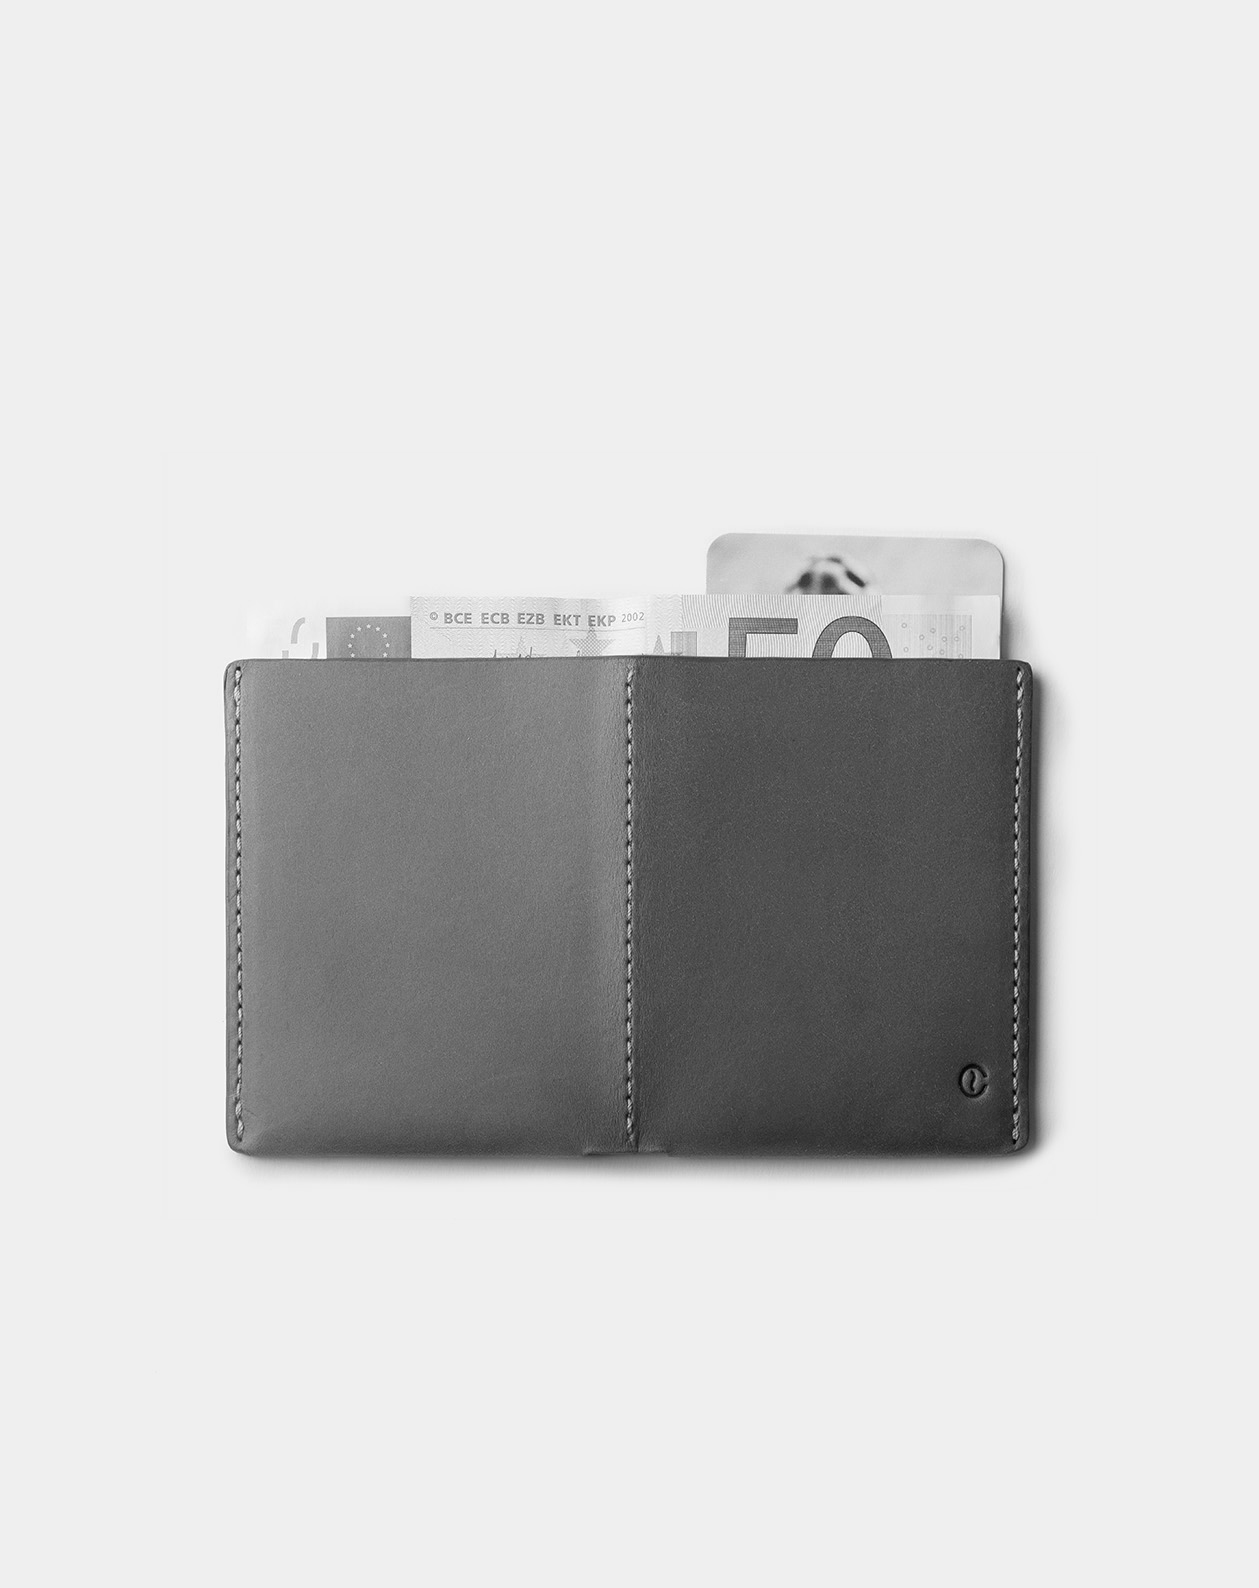 slim wallet for cards and bills